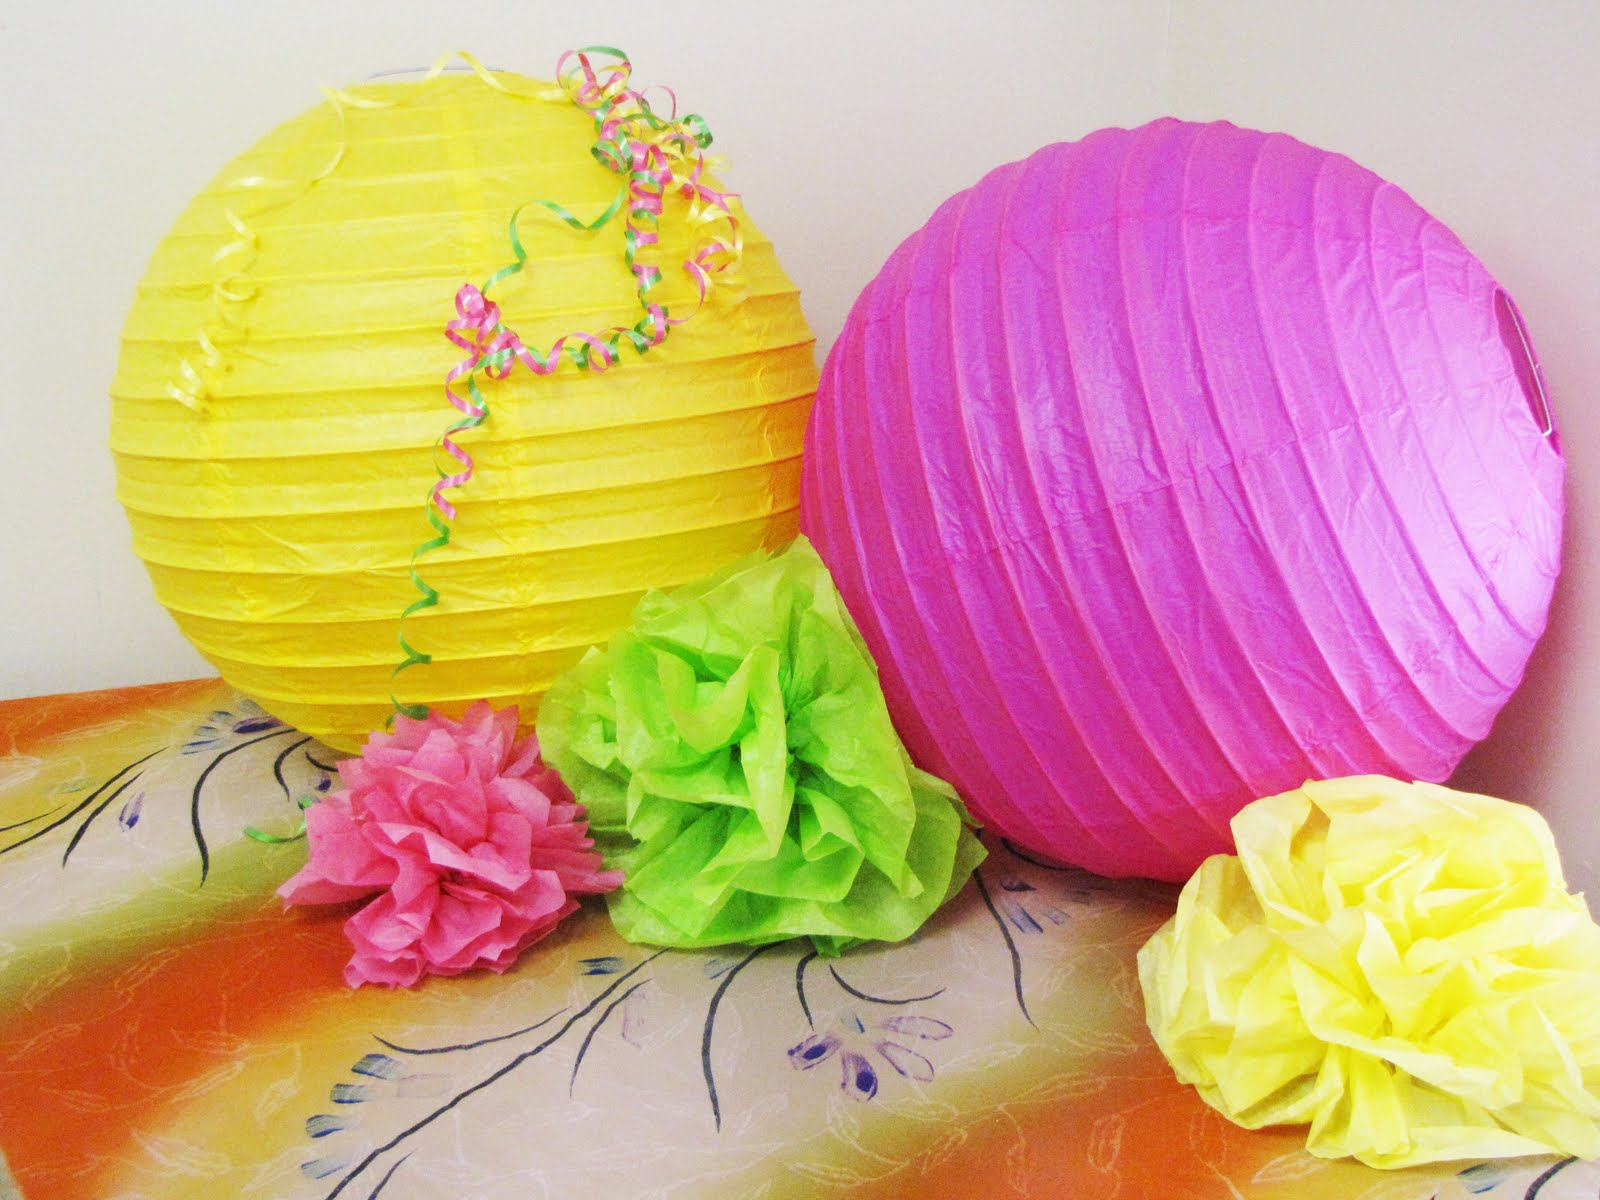 Liddy B. and me: Super Easy Tissue Paper Decorations